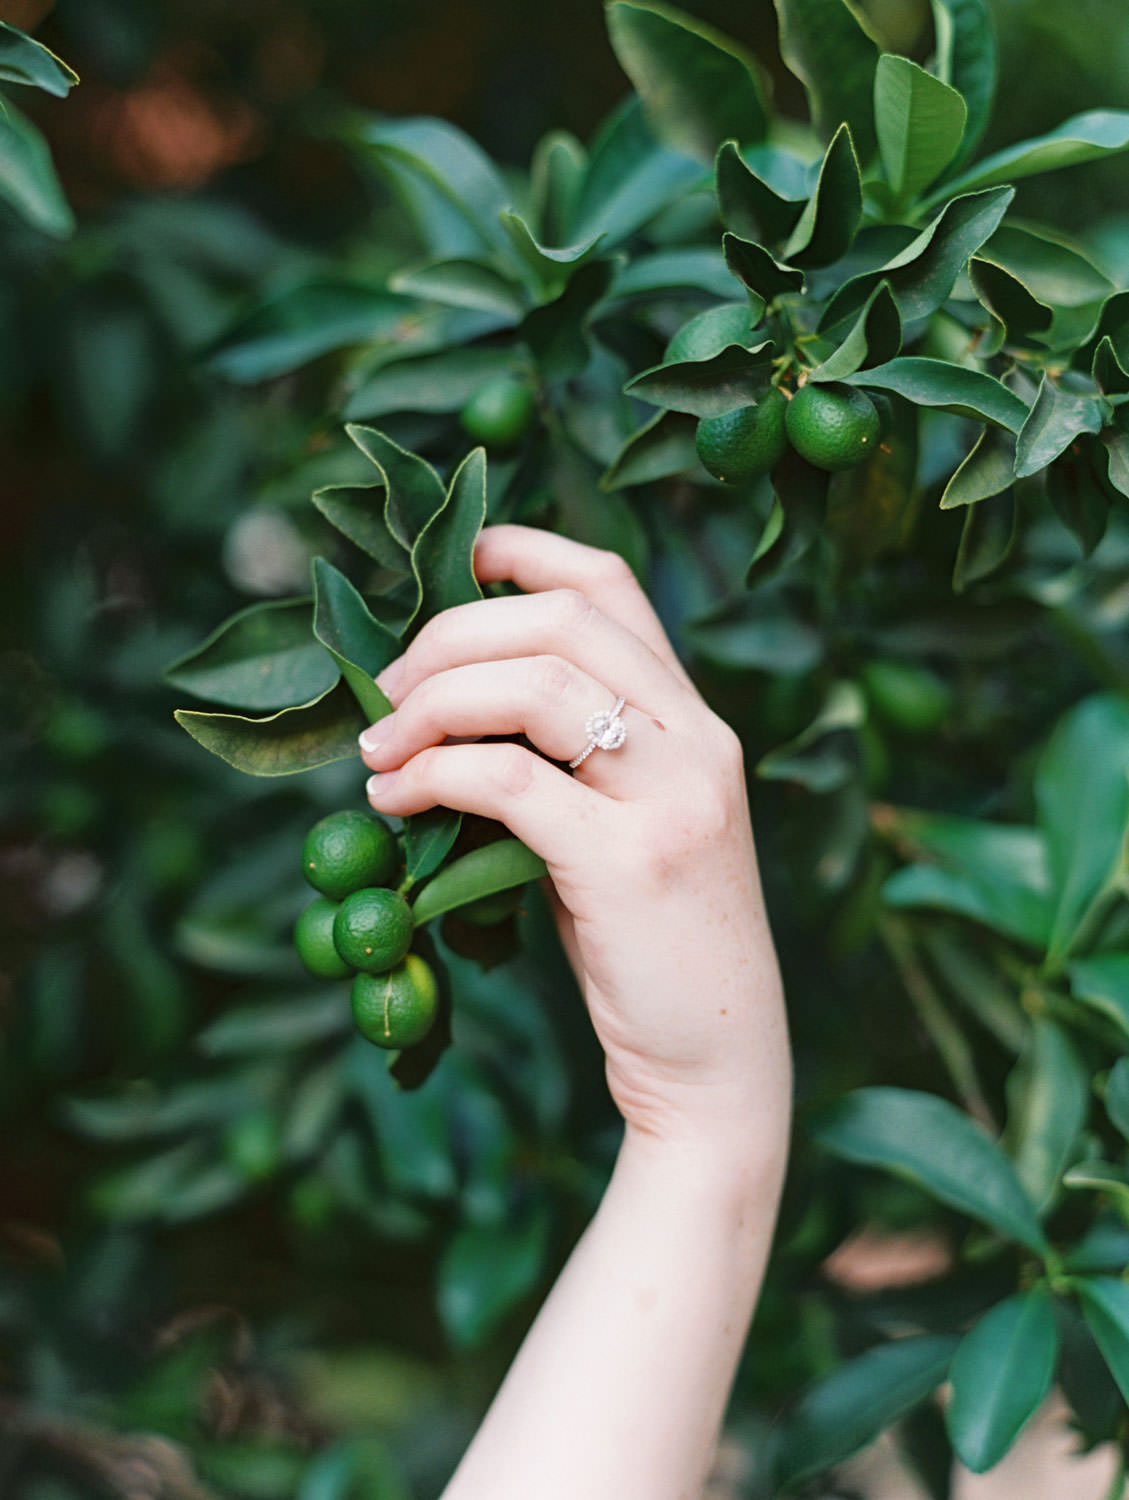 UC Riverside Engagement session in the orange grove. Bride's hand holding unripe oranges and showing off her oval engagement ring with halo. Film photographer Cavin Elizabeth Photography.